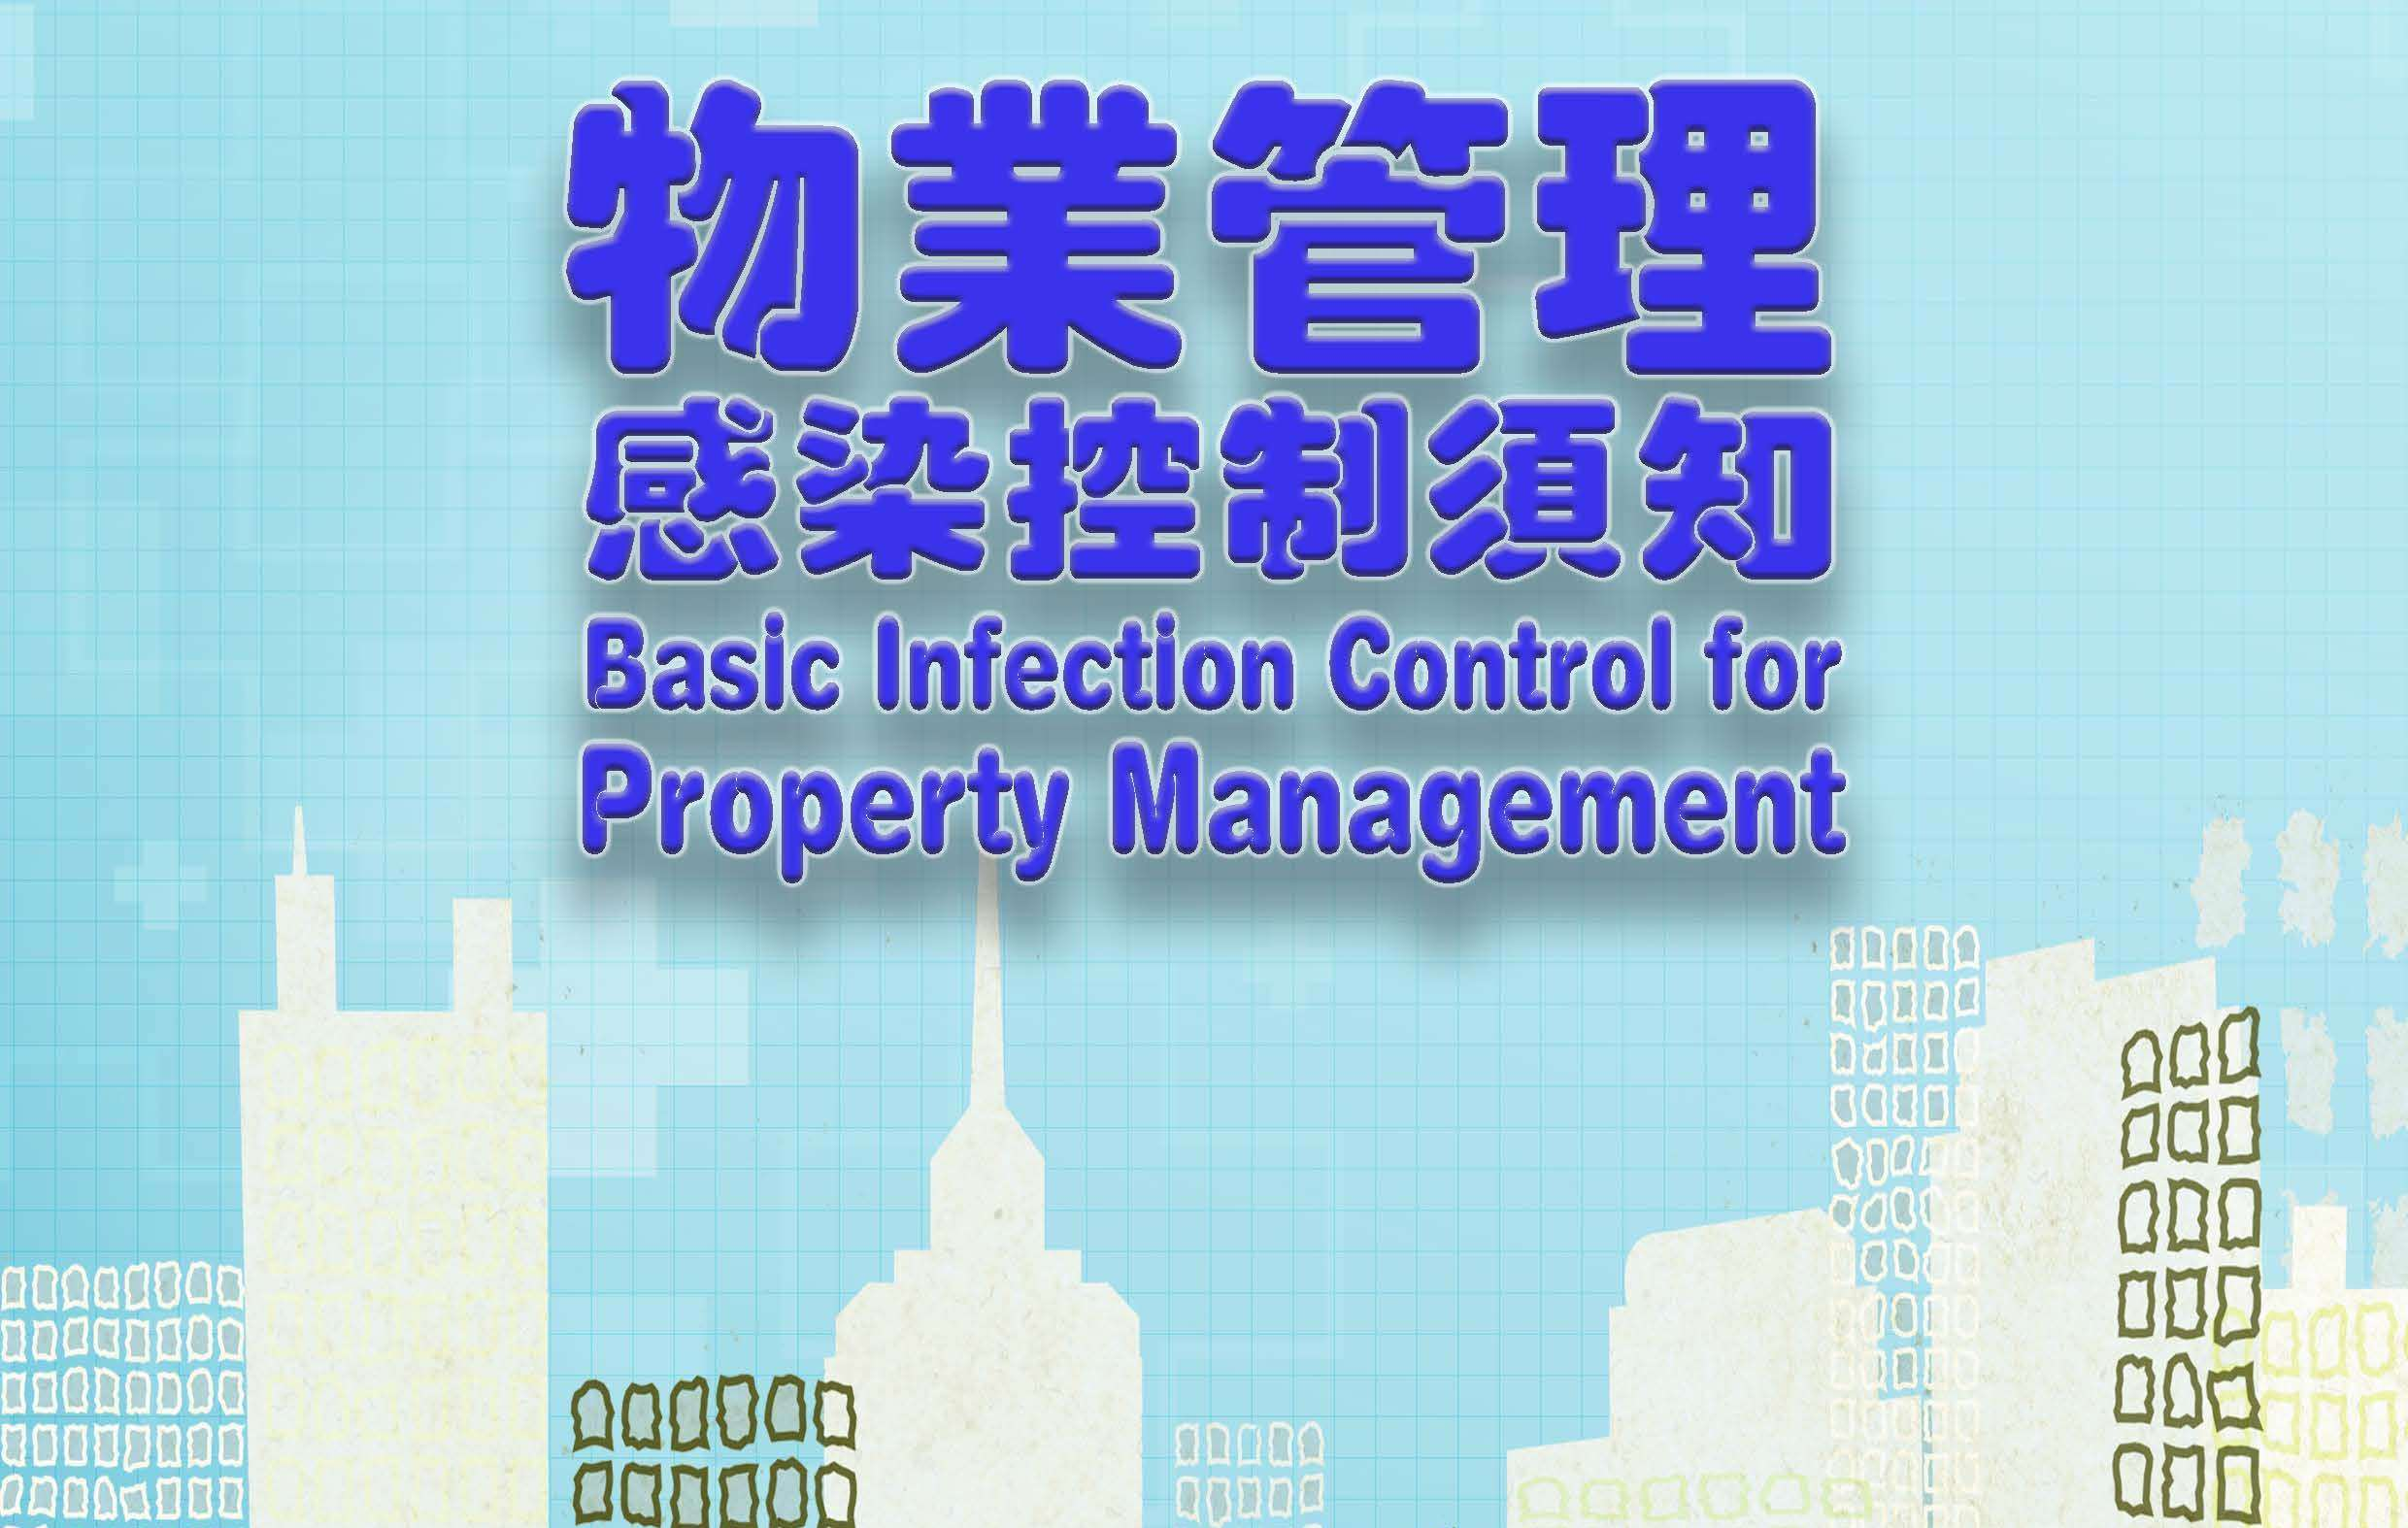 Basic Infection Control for Property Management